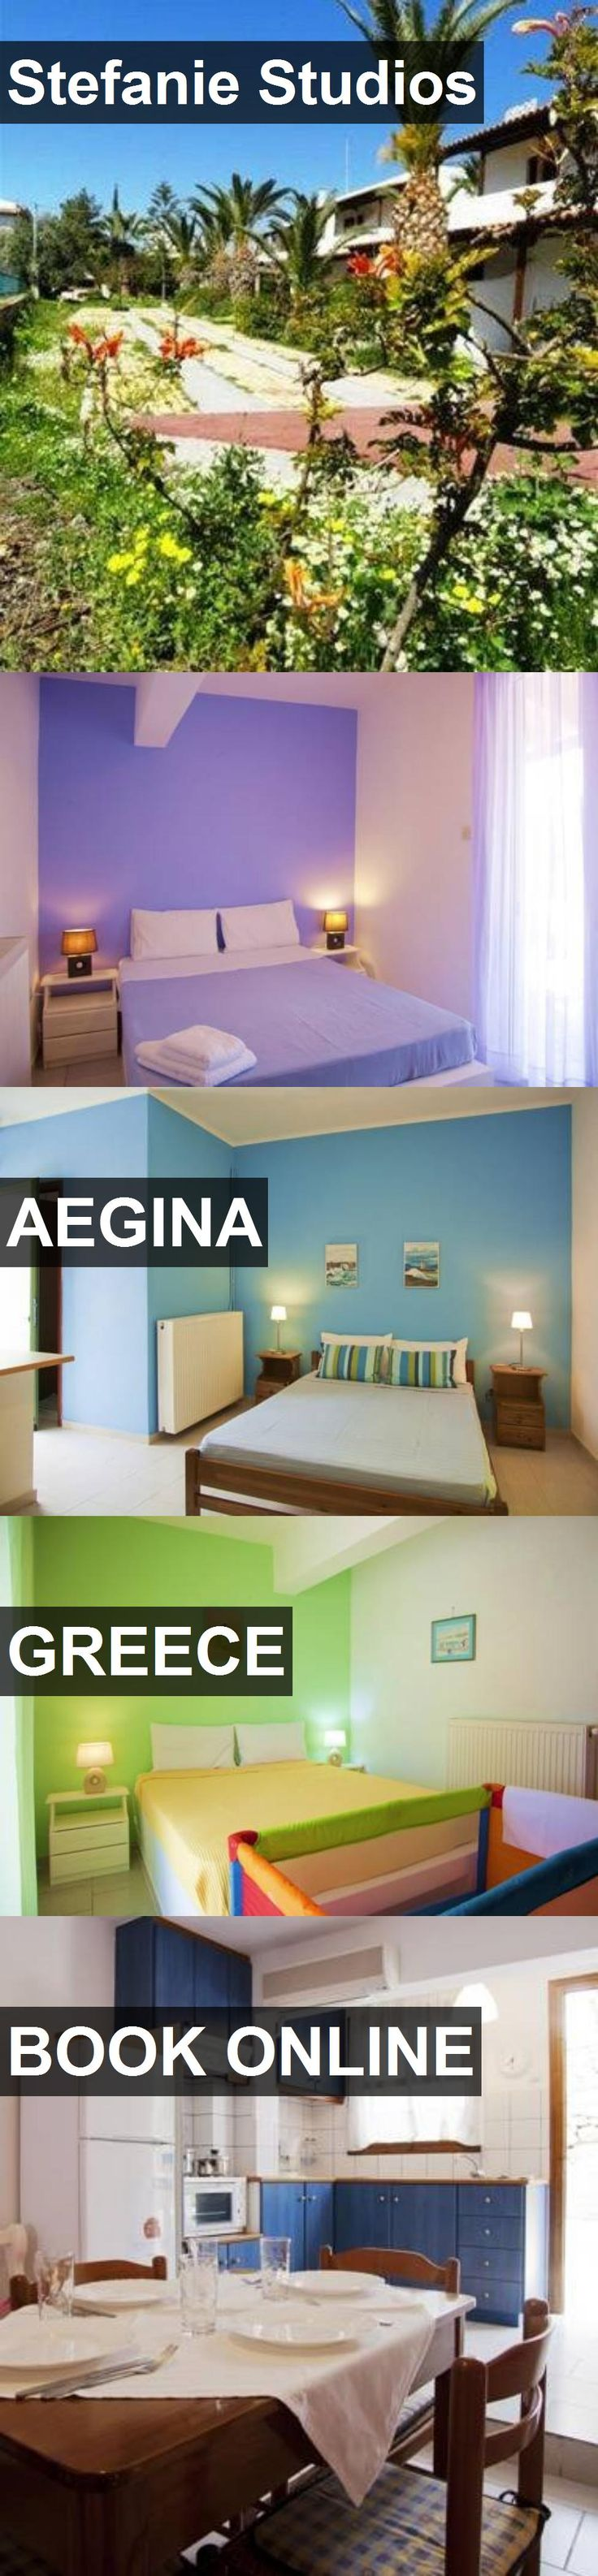 Hotel Stefanie Studios in Aegina, Greece. For more information, photos, reviews and best prices please follow the link. #Greece #Aegina #travel #vacation #hotel